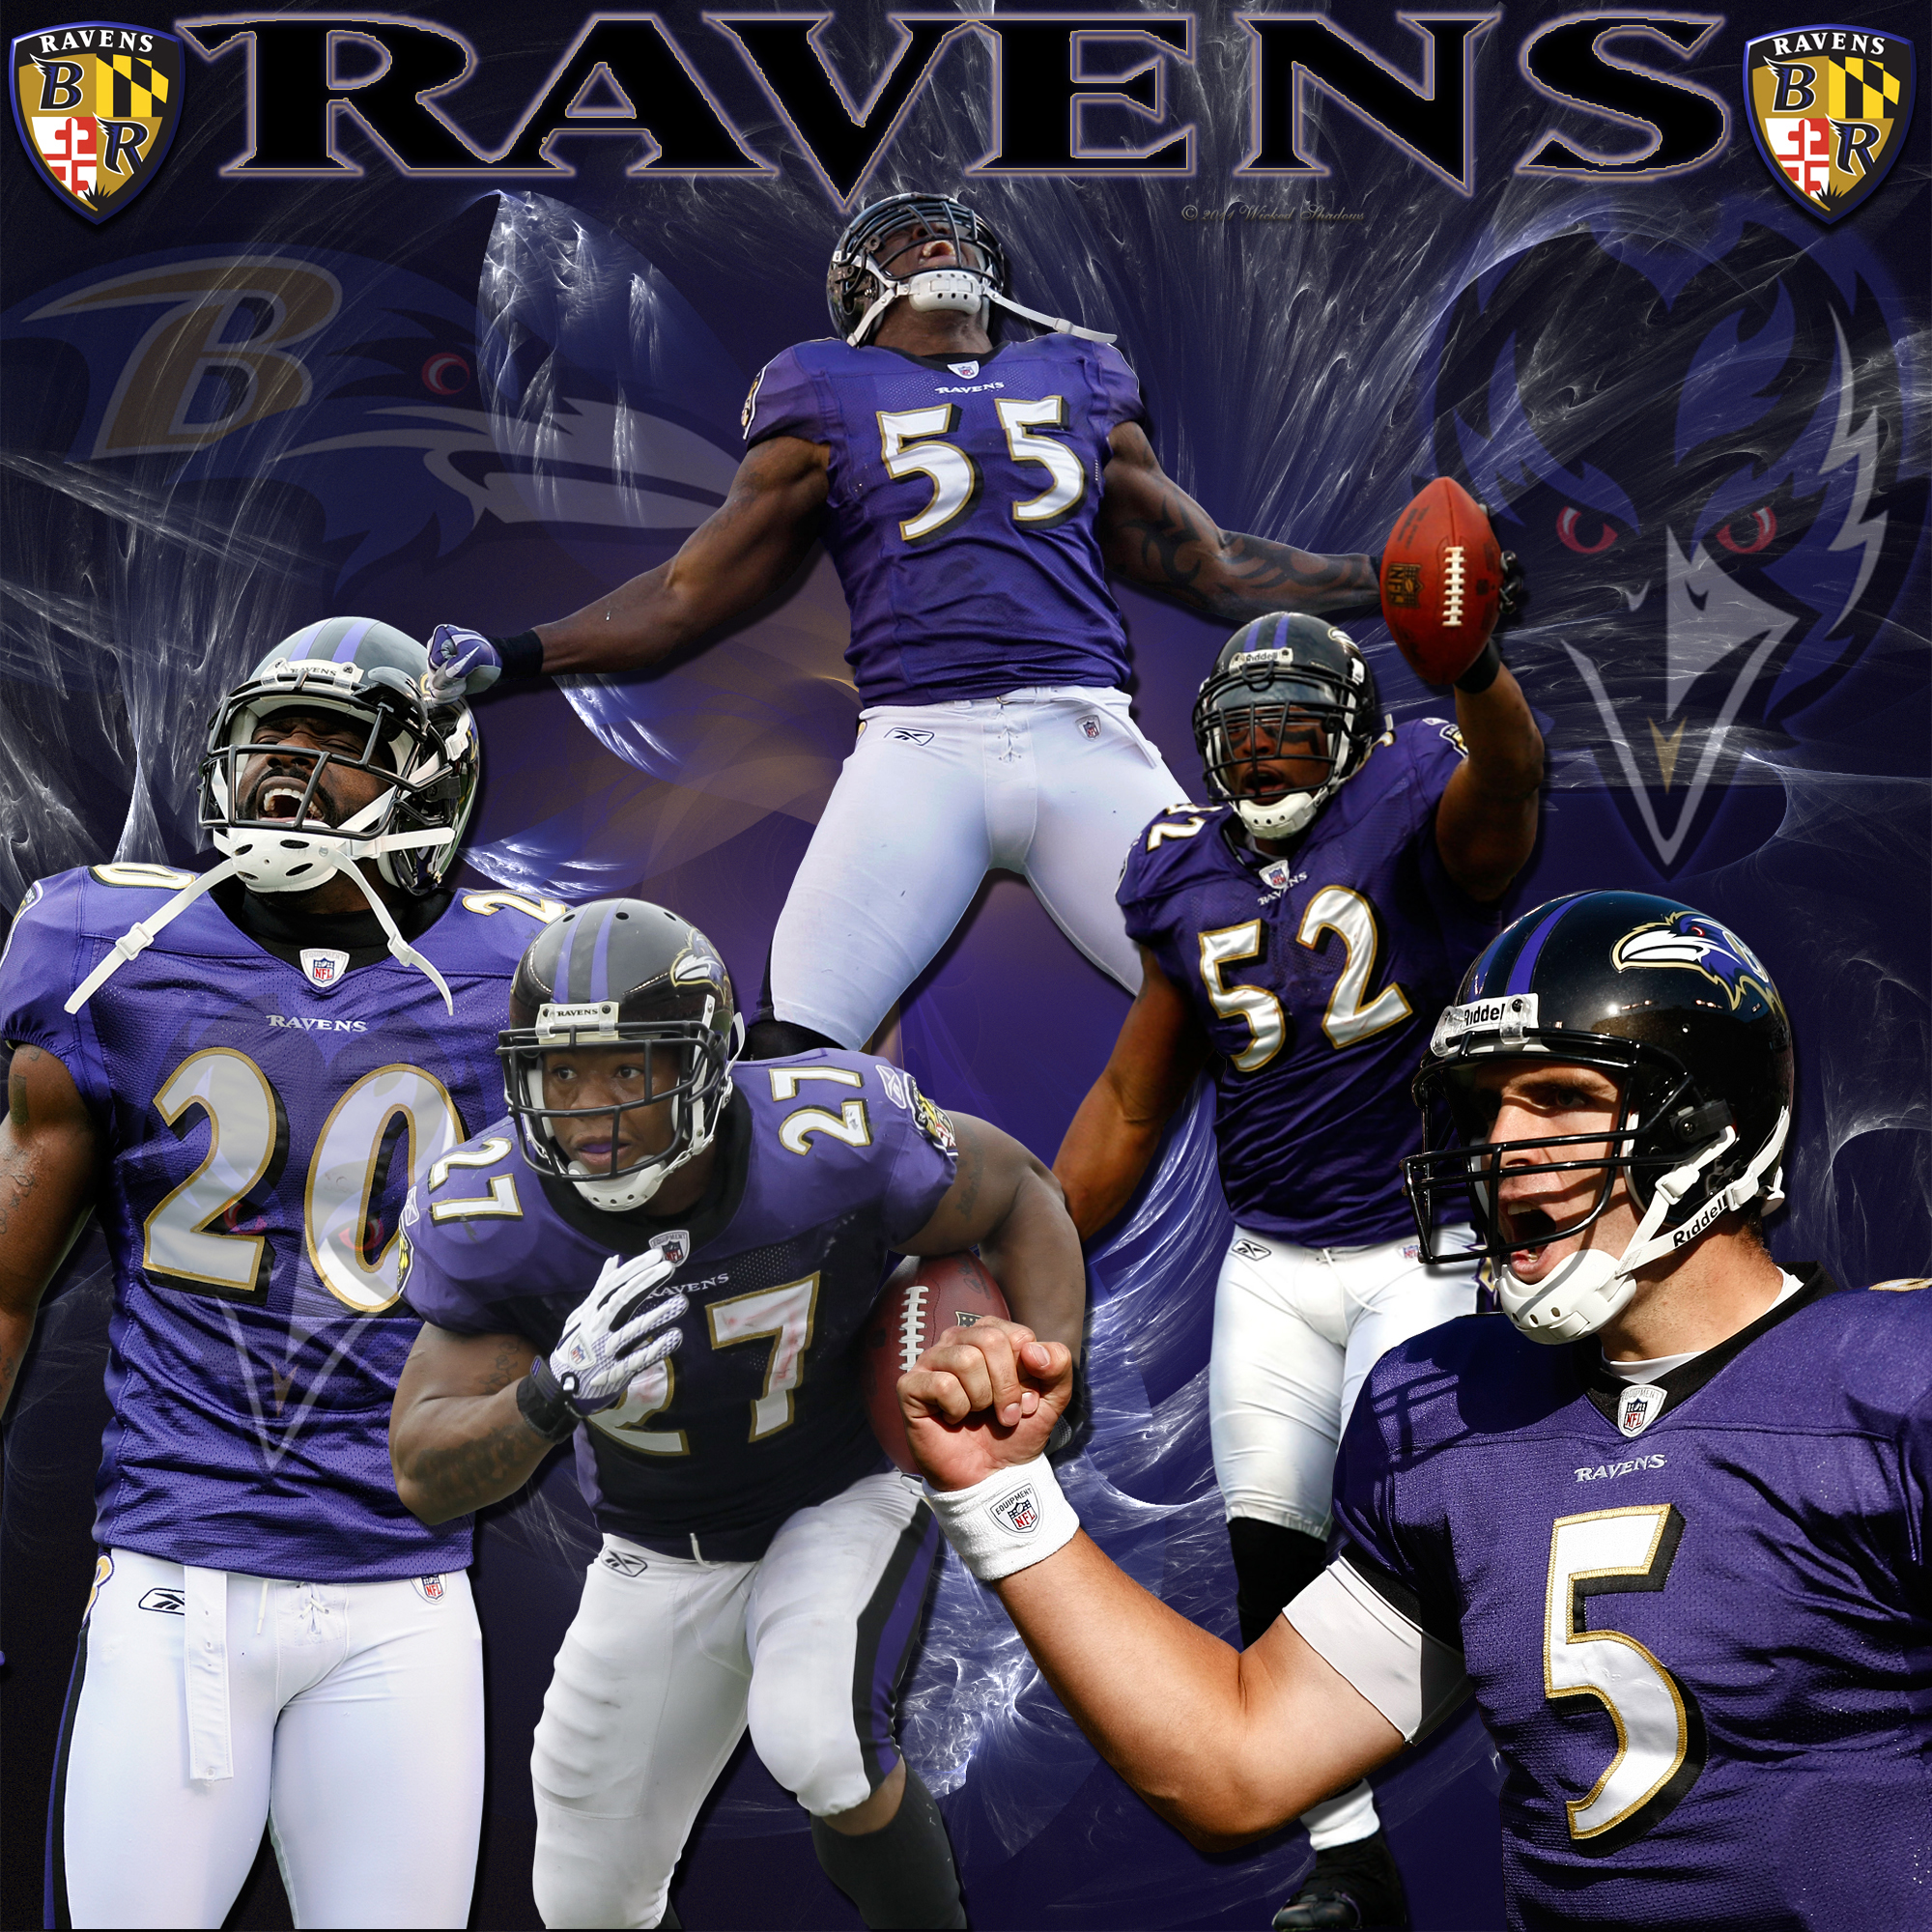 Baltimore Ravens HD images Baltimore Ravens wallpapers 2000x2000